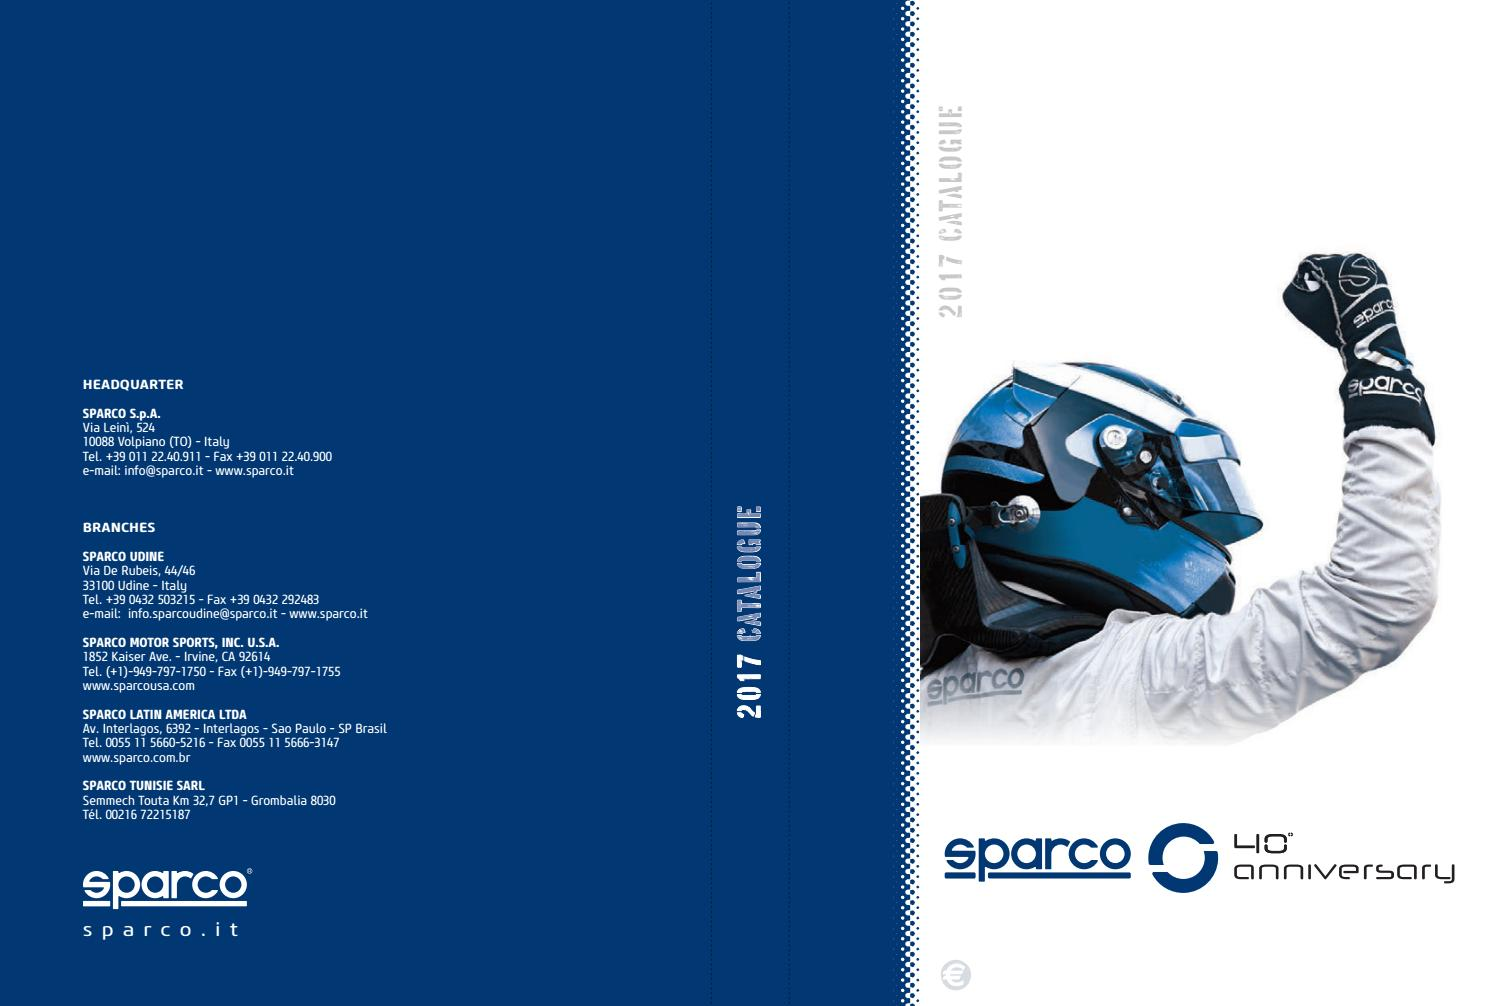 a7b8eca52854 Catalogus sparco 2017 by Speedwear Eyckmans - issuu